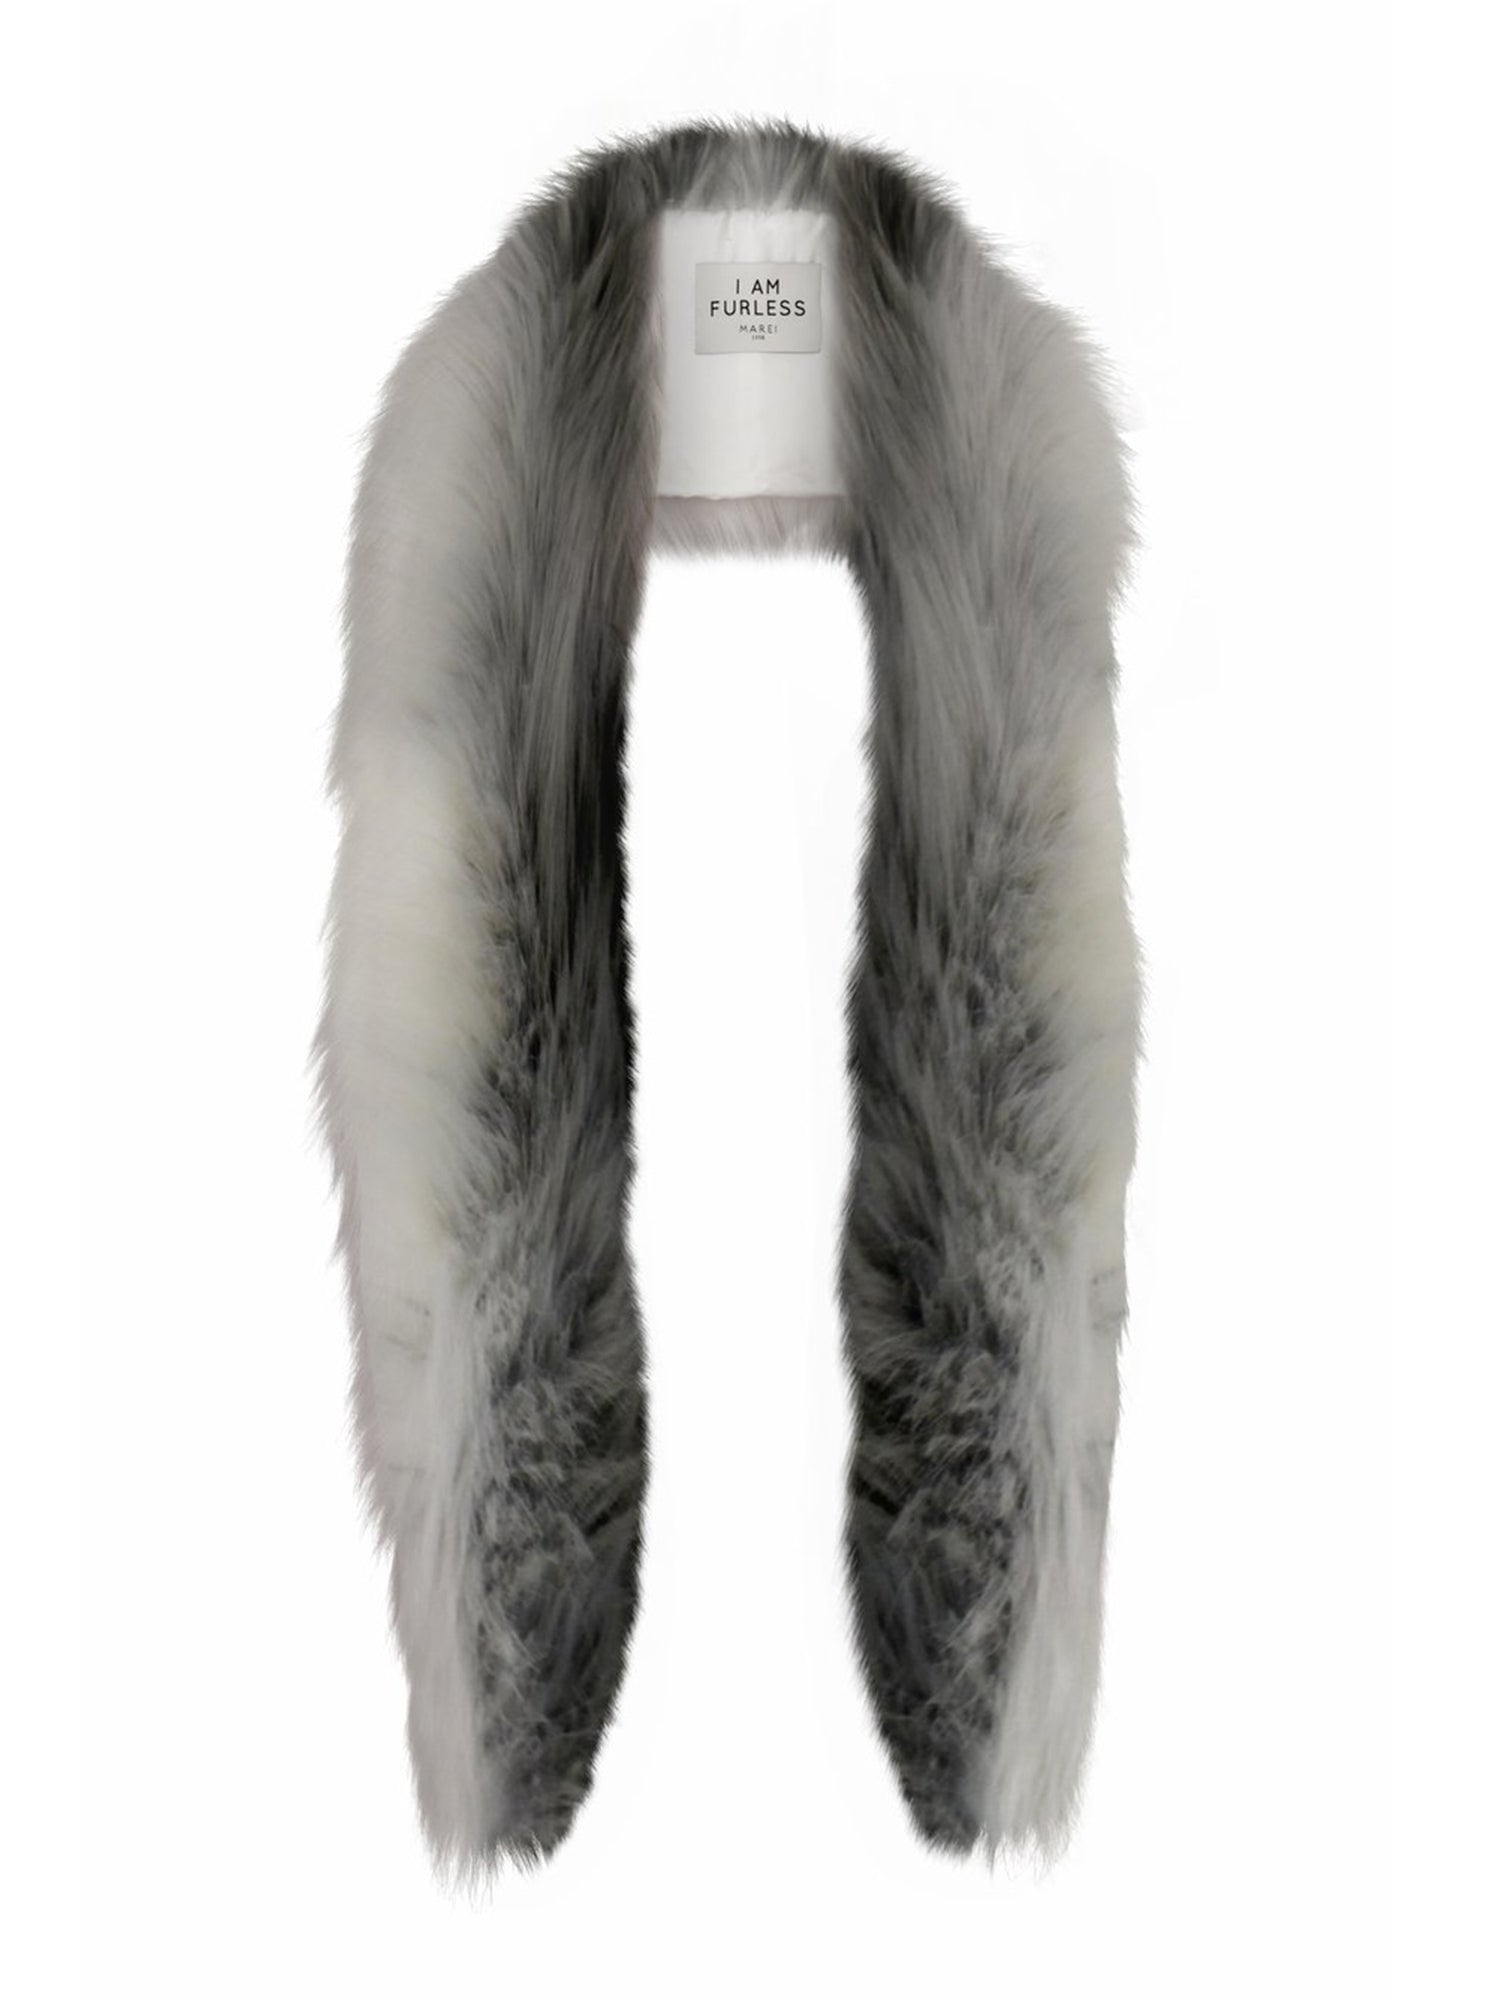 A Packshot Of Marei1998's Mimosa Faux Fur Scarf In Mixed Color. Made From Plush Faux Fur, It Features Lush Longhaired Texture And Wide Silhouette Design That Is Incredibly Soft And Comfortable. Front View.